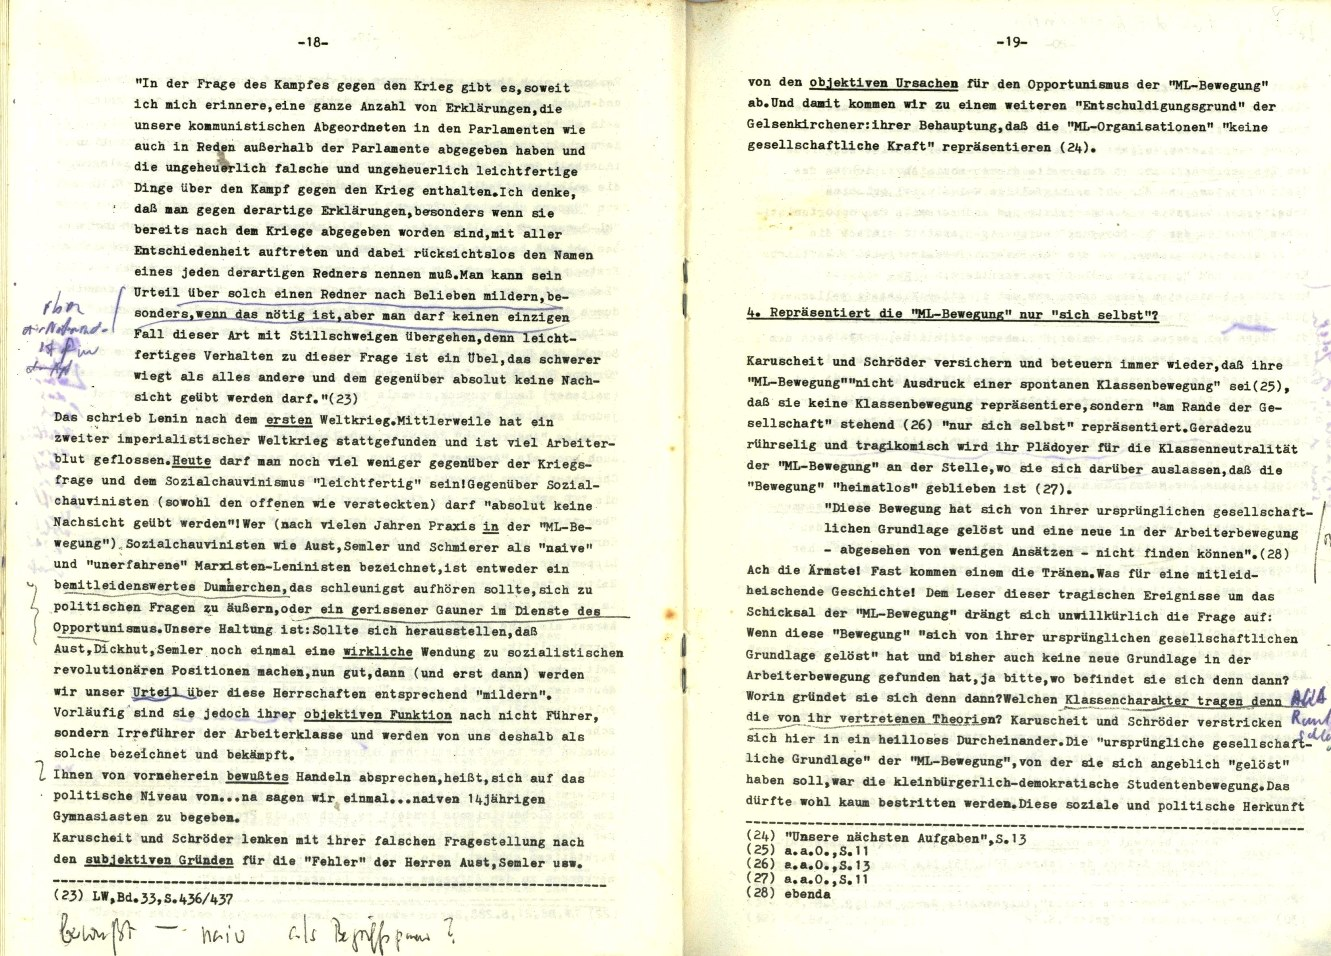 Muenchen_Kampf_dem_Revisionismus_1978_07_10